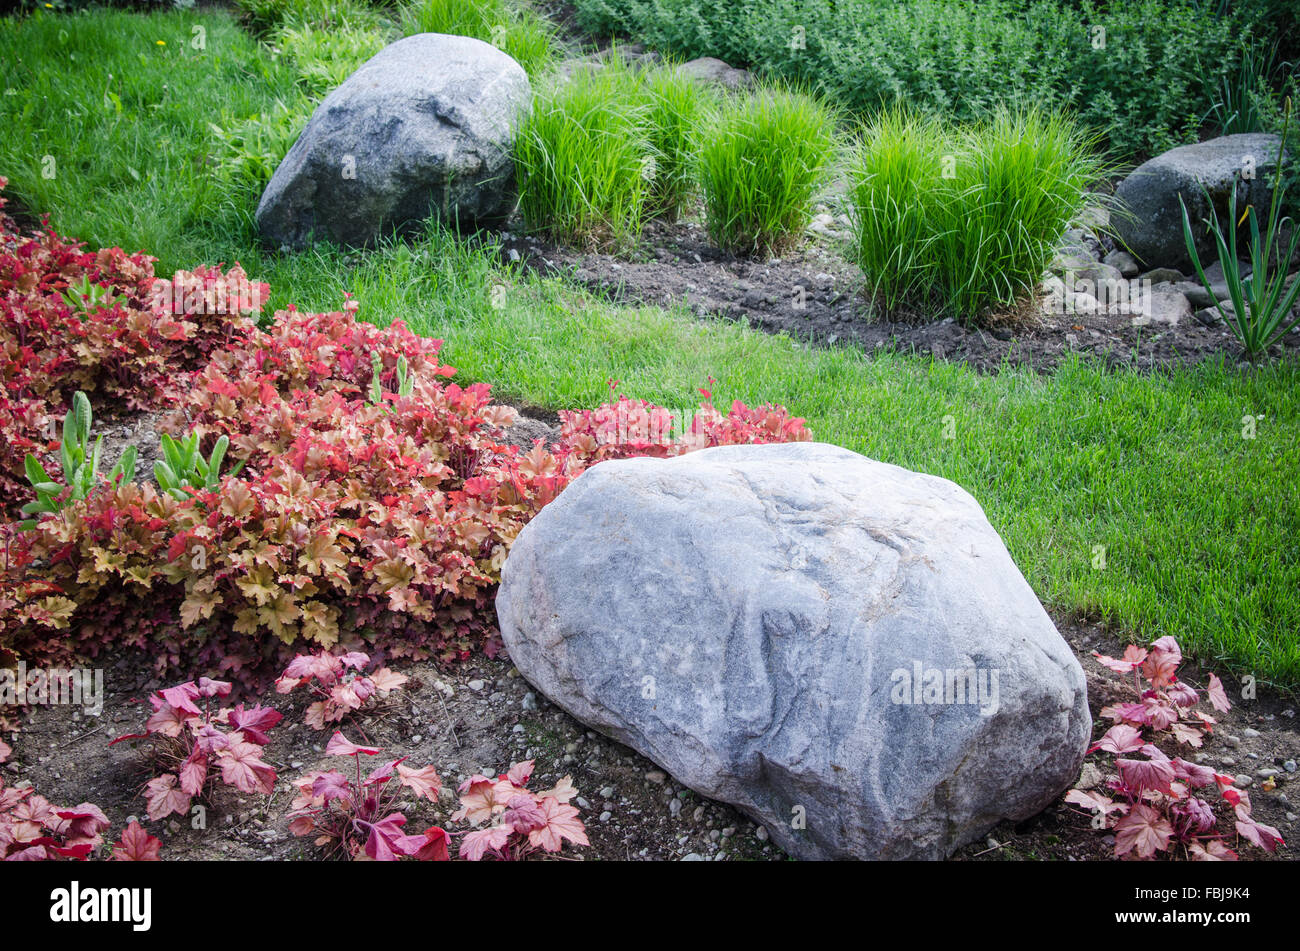 Decorative Flower Bed In A Garden With Rocks And Plants, Close Up